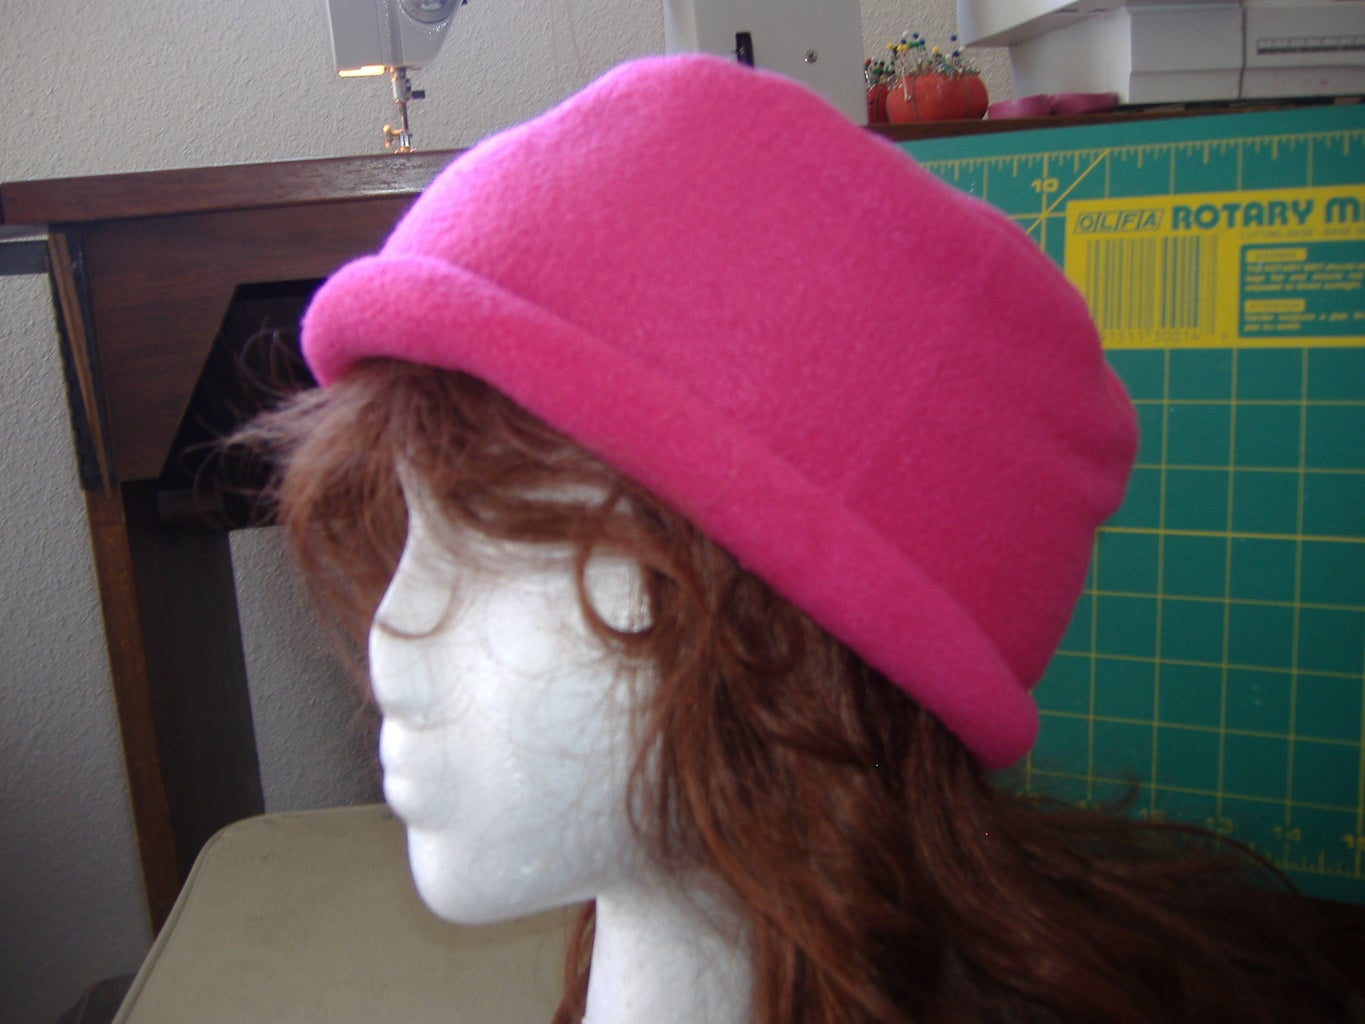 Sewing the Hat